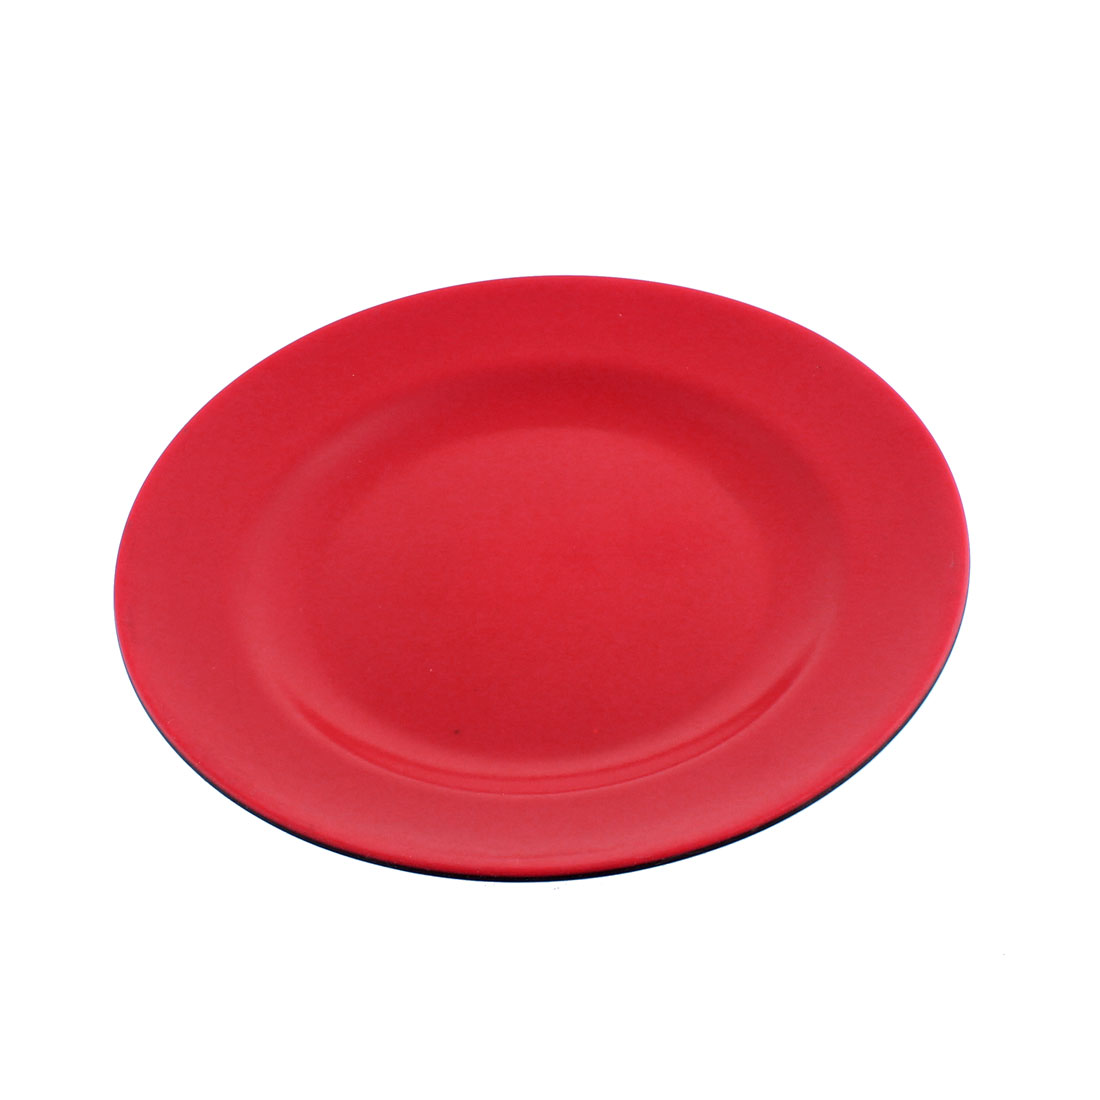 "Restaurant Hot Pot Round Design Food Snack Dish Plate Tableware Red Black 9"" Dia"